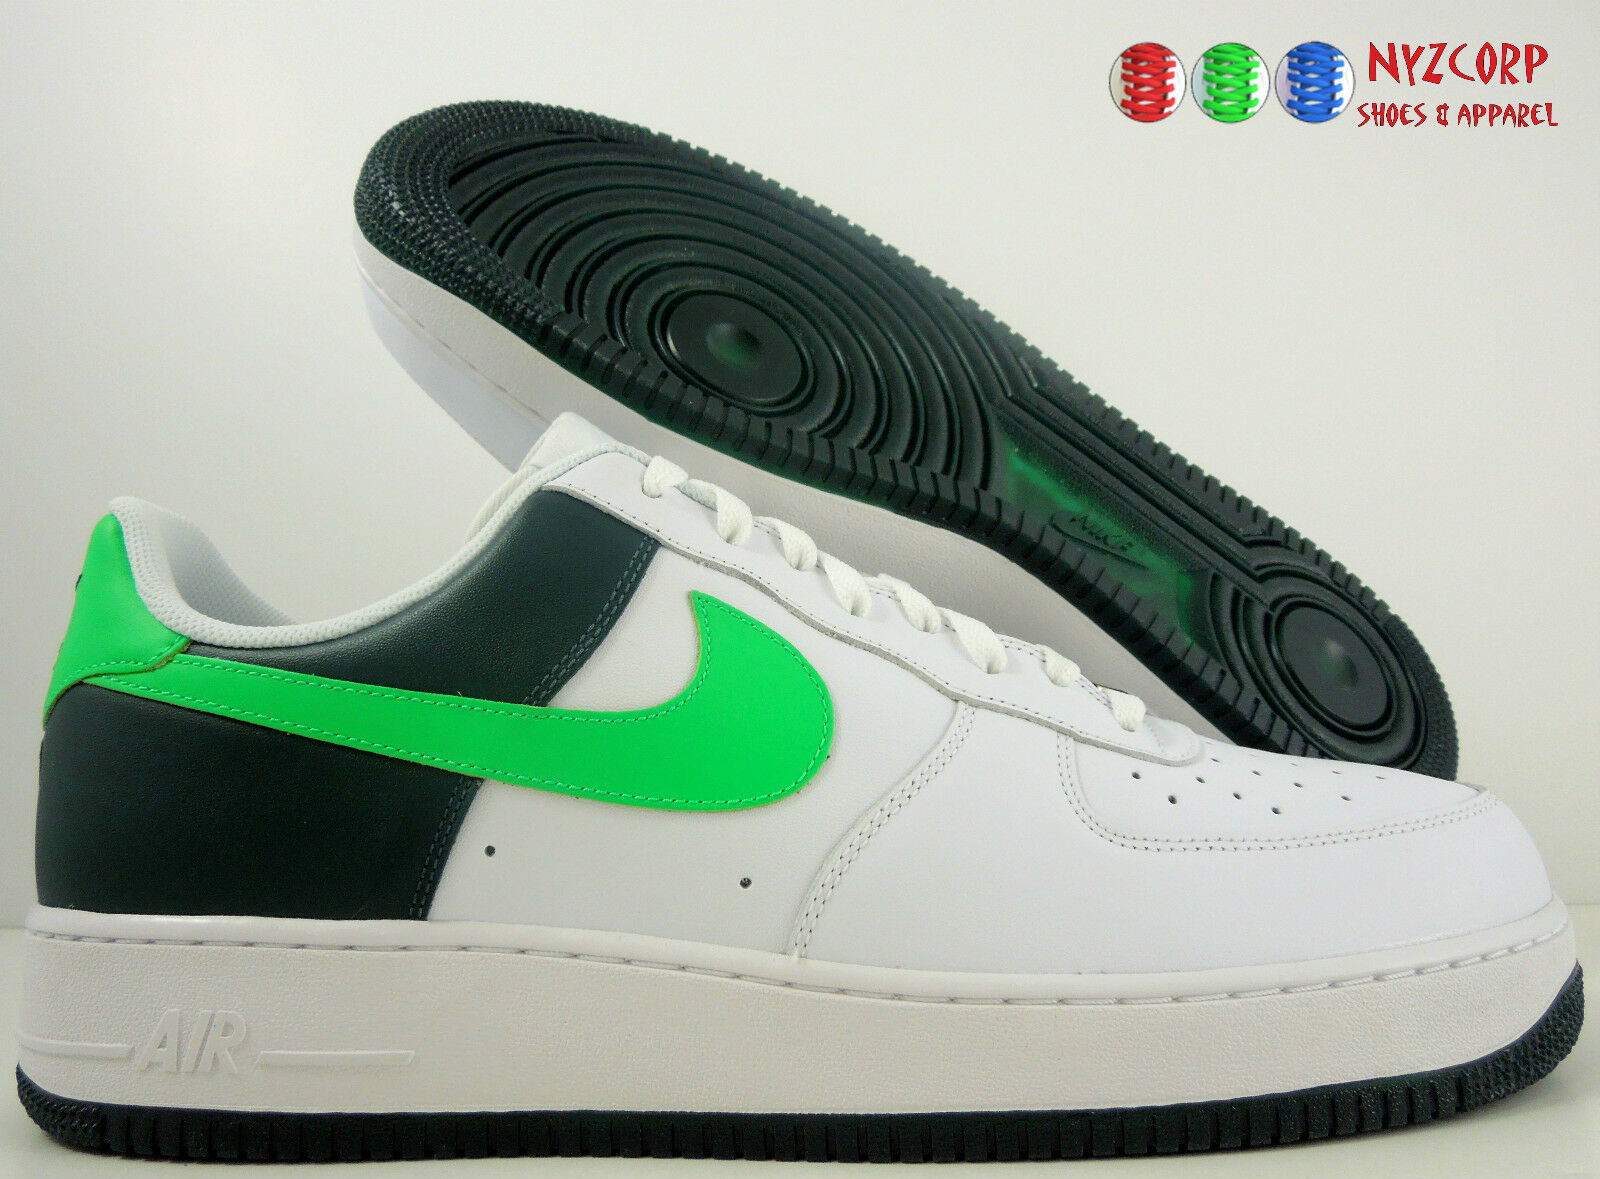 Nike air force 1 07 white-bright [315122-160] kiwi-dark pine sz 15 [315122-160] white-bright 2c00f5